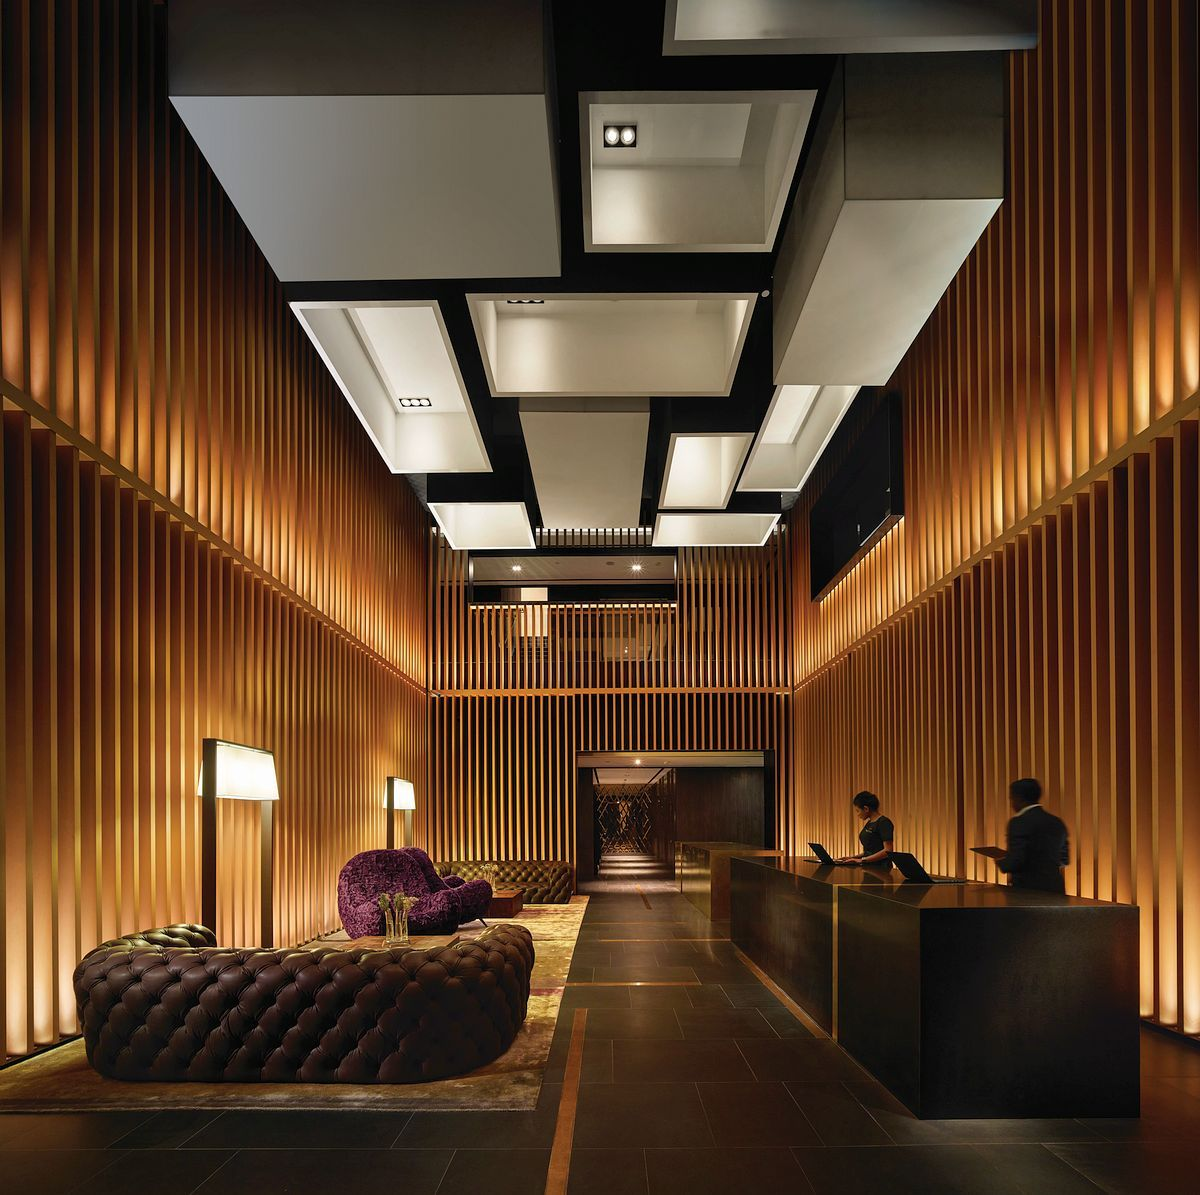 G hotel kelawai malaysia with its exquisite luxury for Designhotel 21